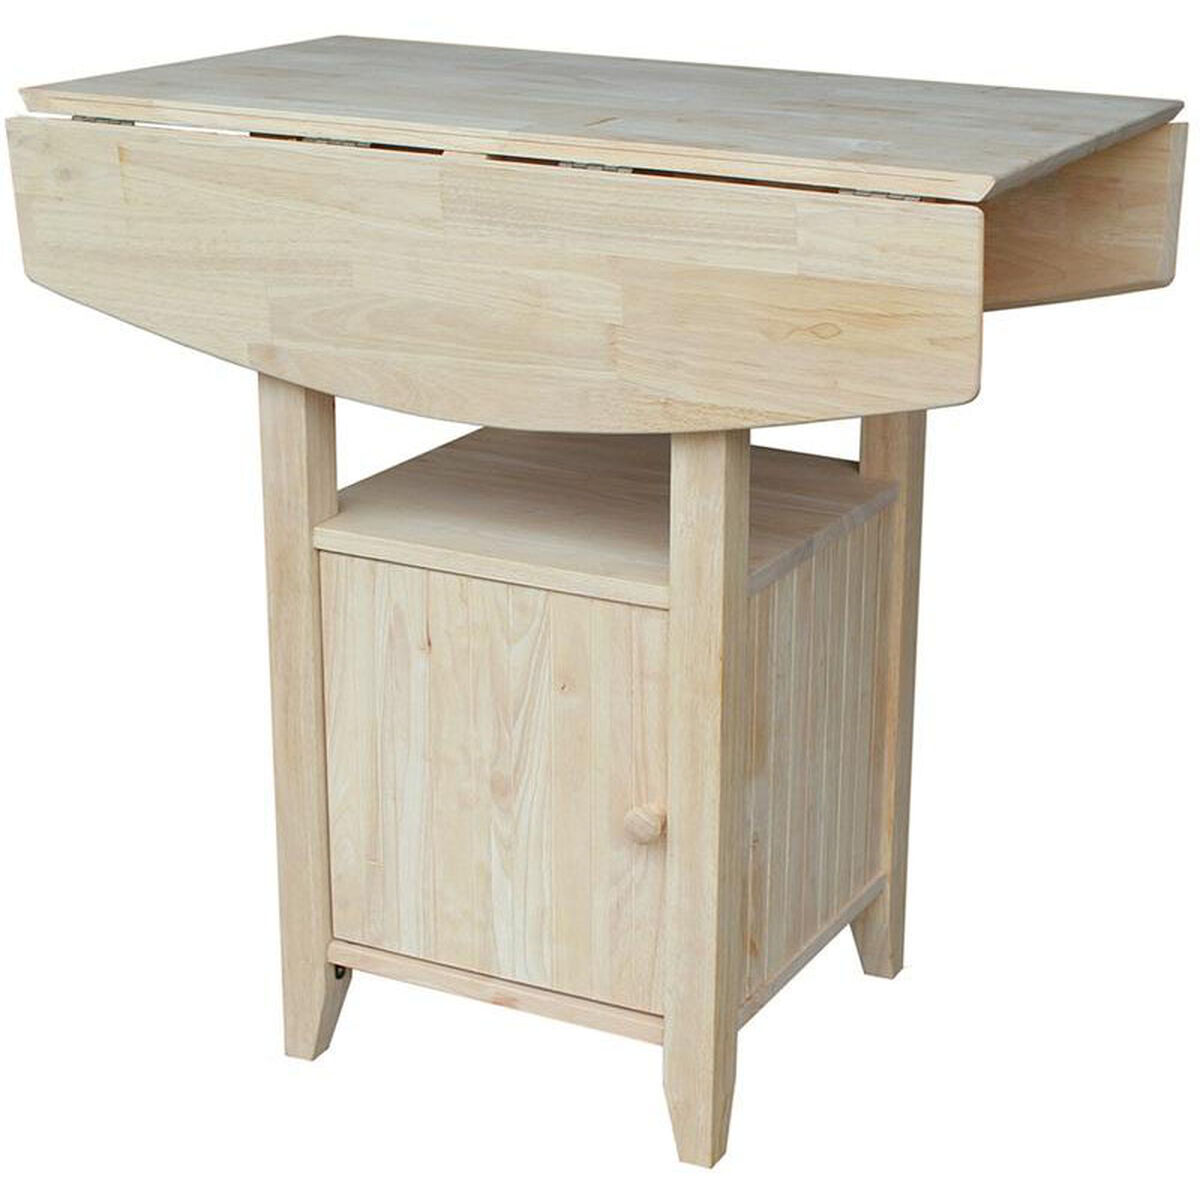 Solid Wood Coffee Tables With Storage Cabinets For Sale: Solid Wood Counter Height Table T-3638DPG